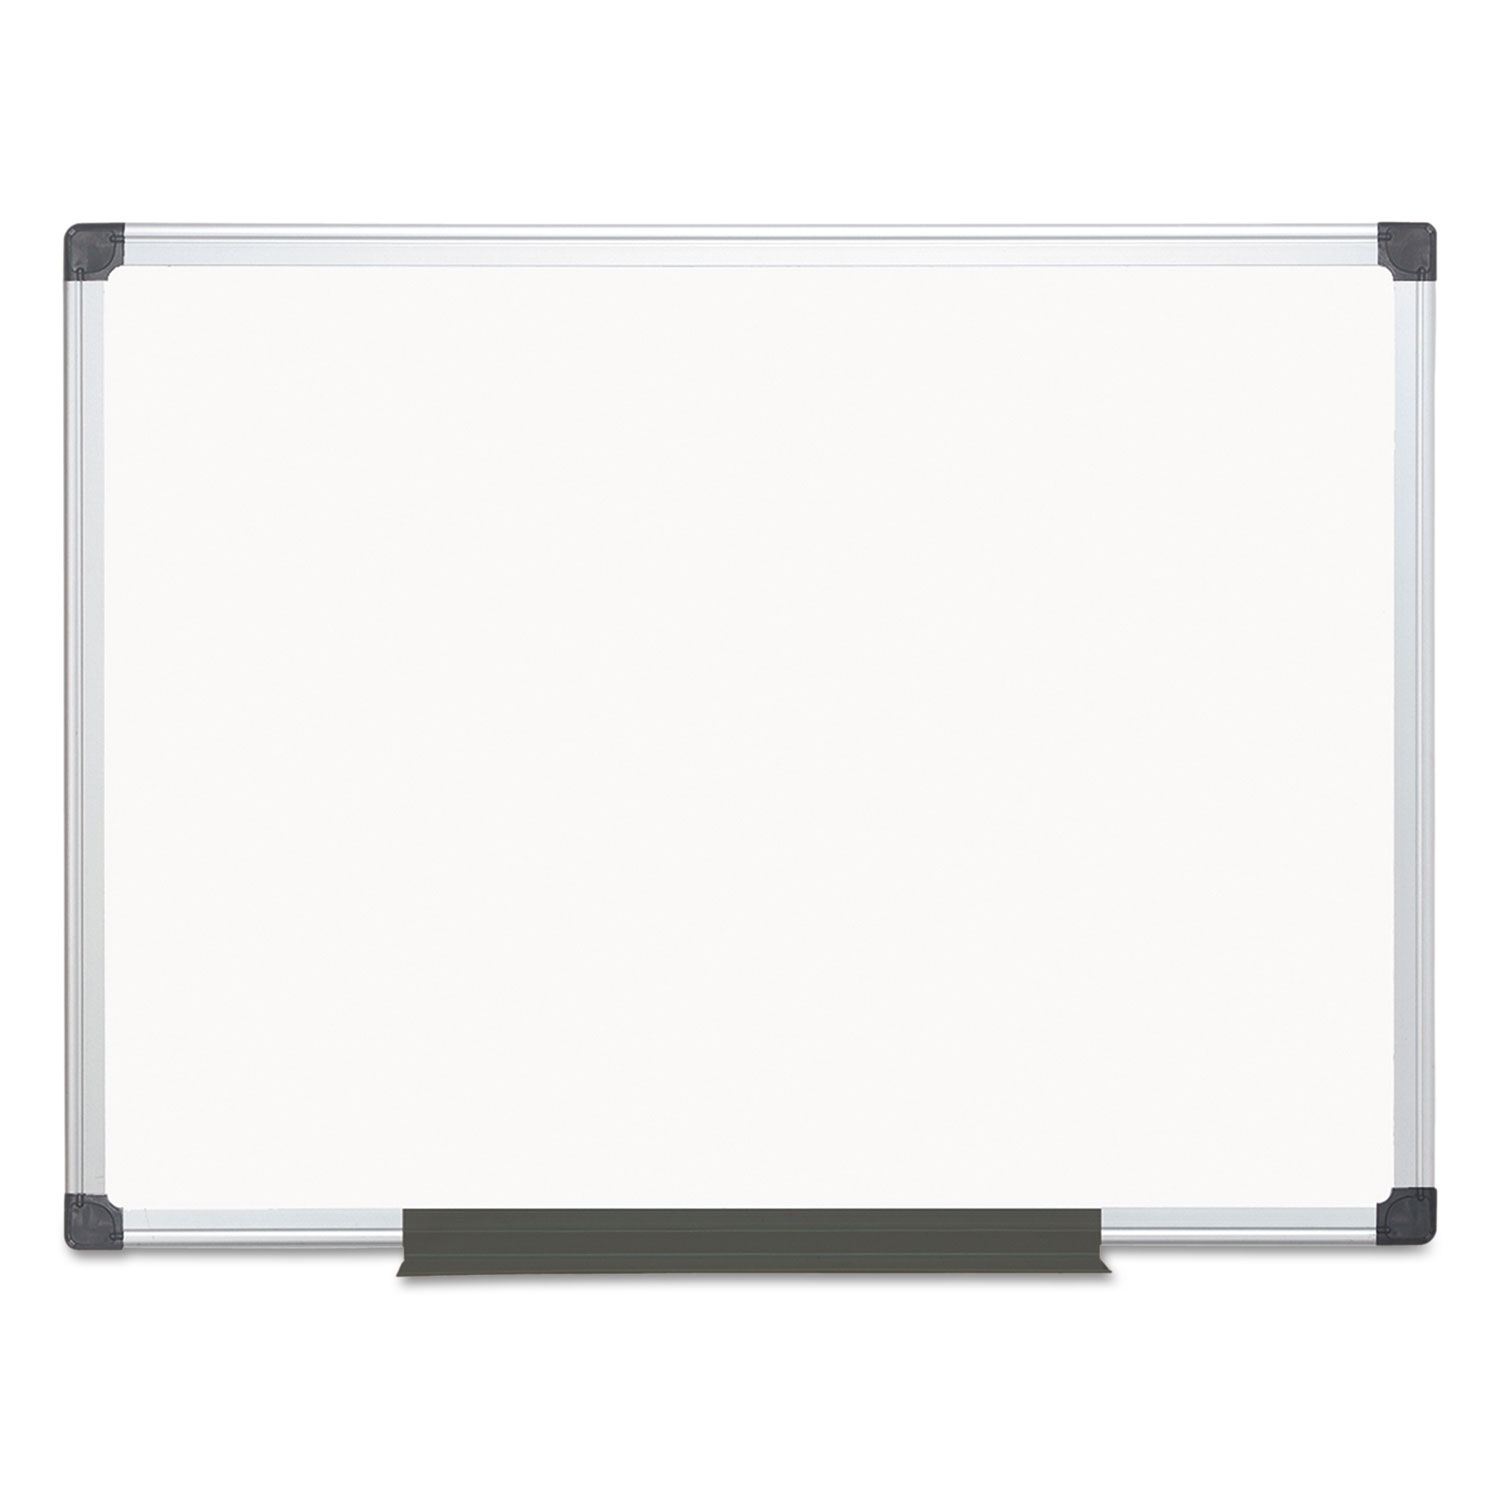 Metal Dry Erase Board : Value lacquered steel magnetic dry erase board by